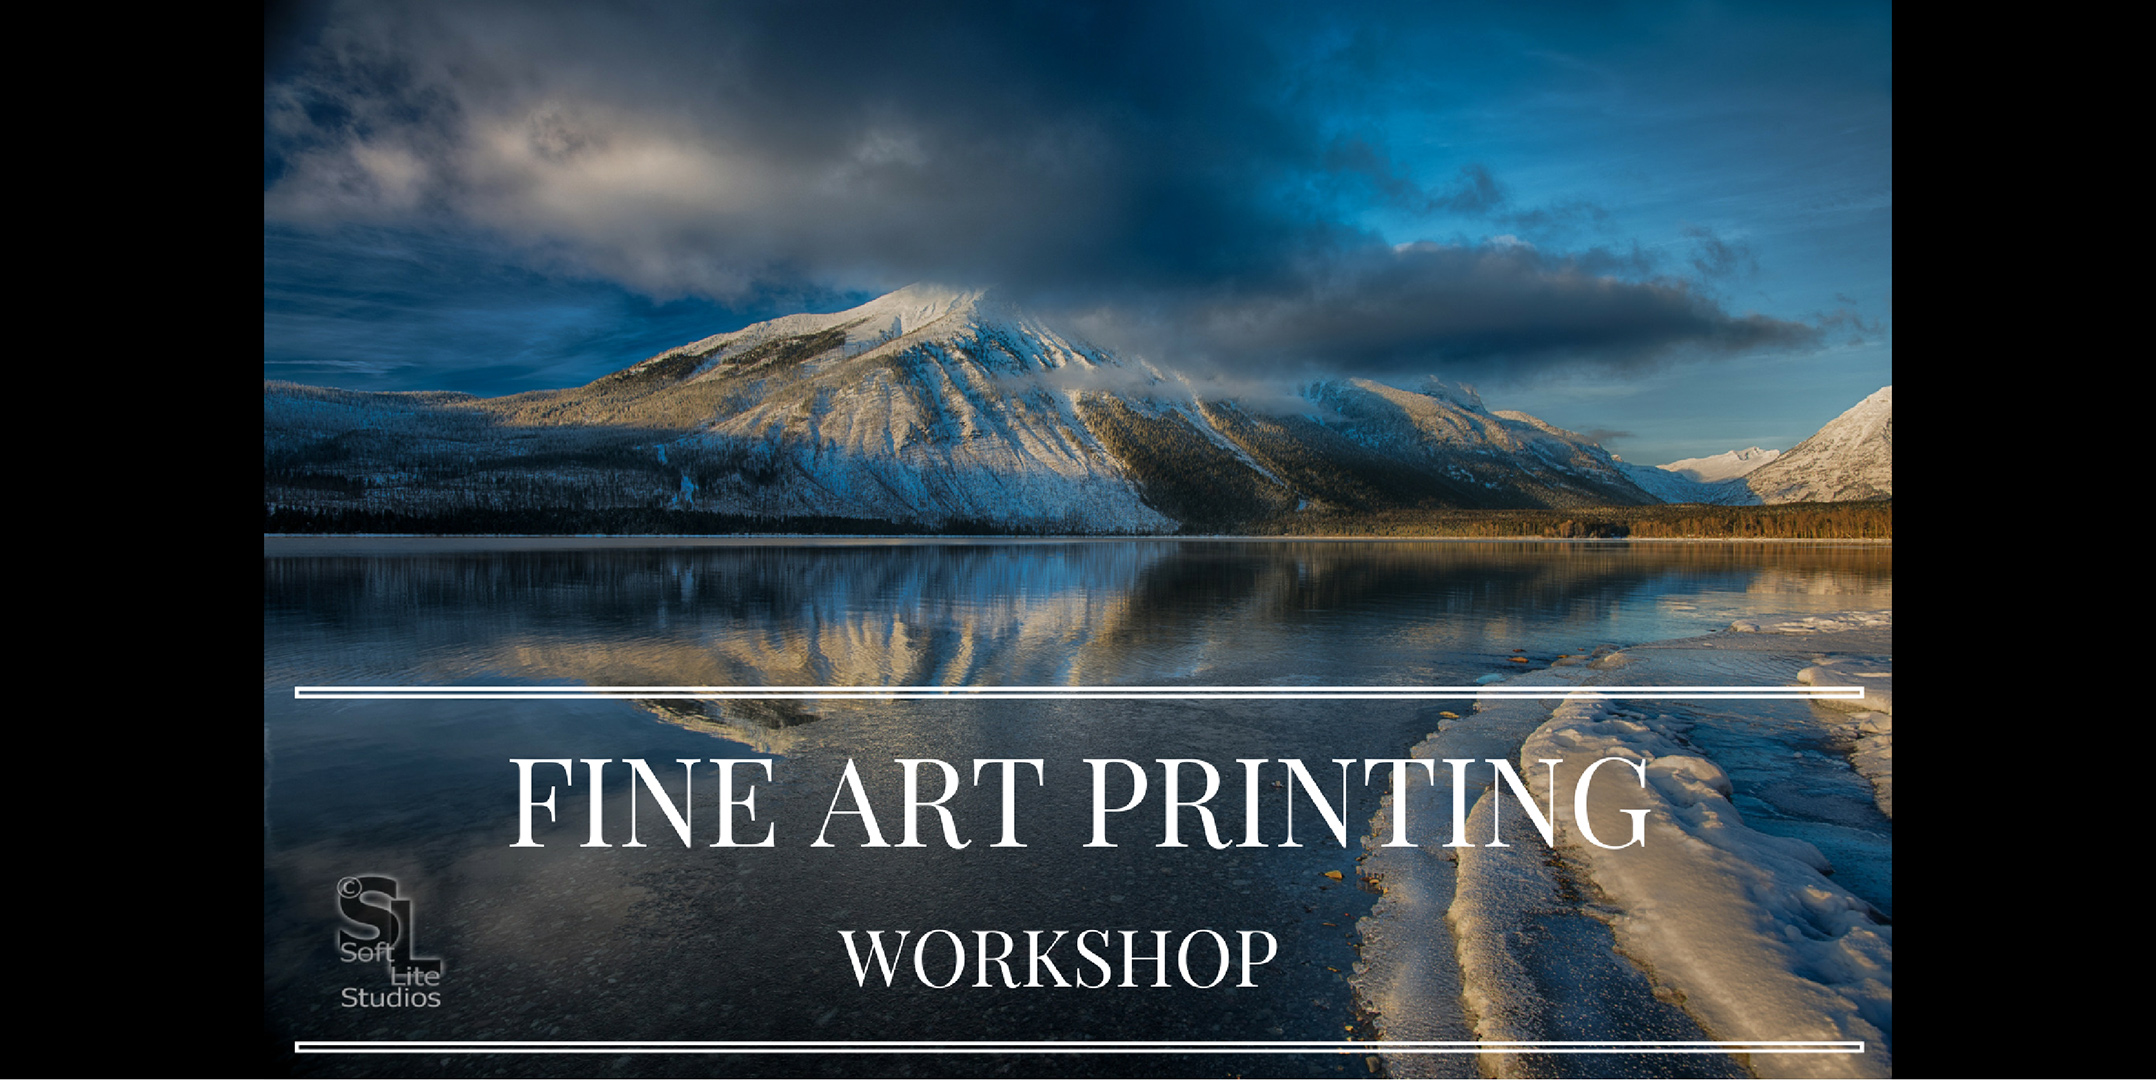 Fine Art Printing Workshop